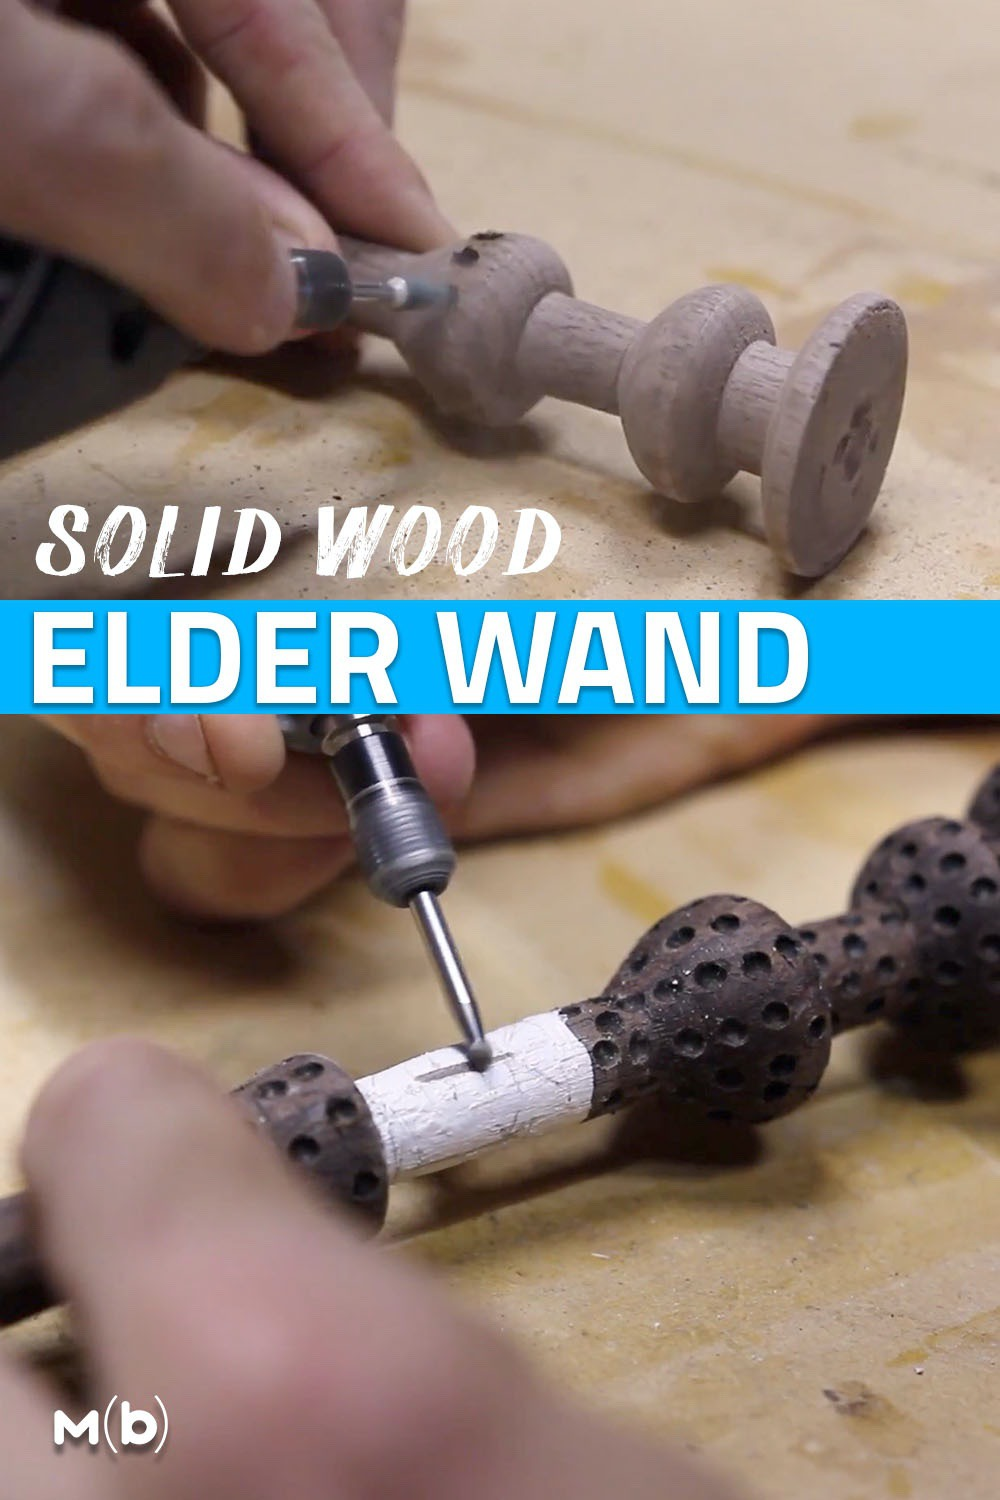 How to make the Elder Wand from Harry Potter out of solid wood on the wood lathe #woodworking #woodturning #diy